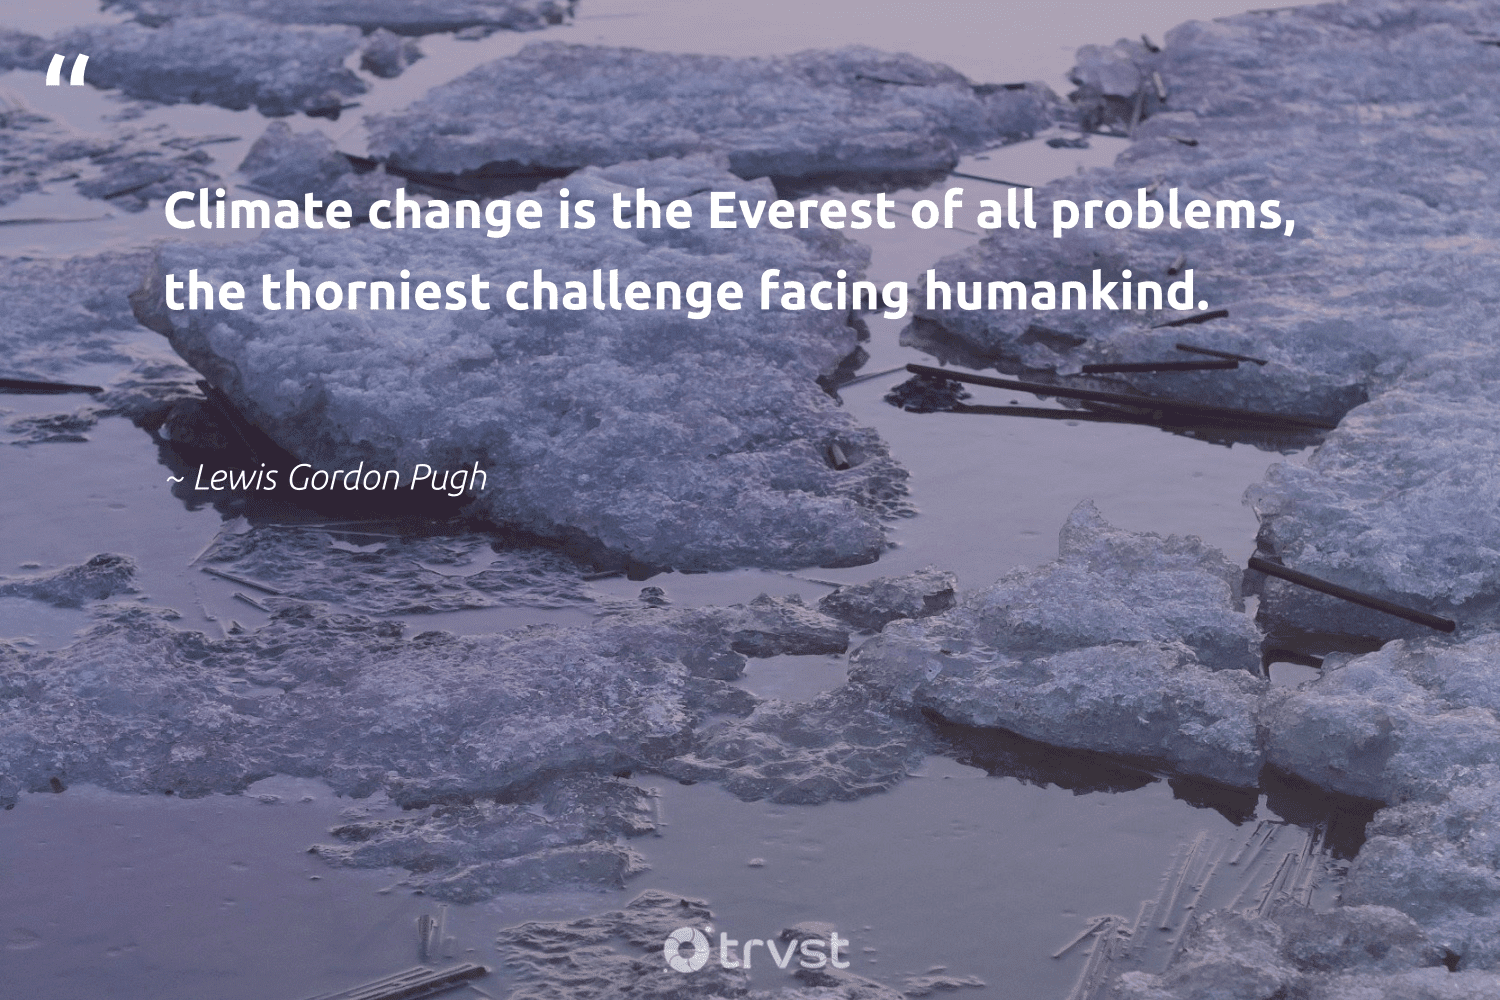 """""""Climate change is the Everest of all problems, the thorniest challenge facing humankind.""""  - Lewis Gordon Pugh #trvst #quotes #climatechange #climate #carbonemissions #actonclimate #climateaction #ecoconscious #socialchange #globalwarming #cop21 #climatefight"""